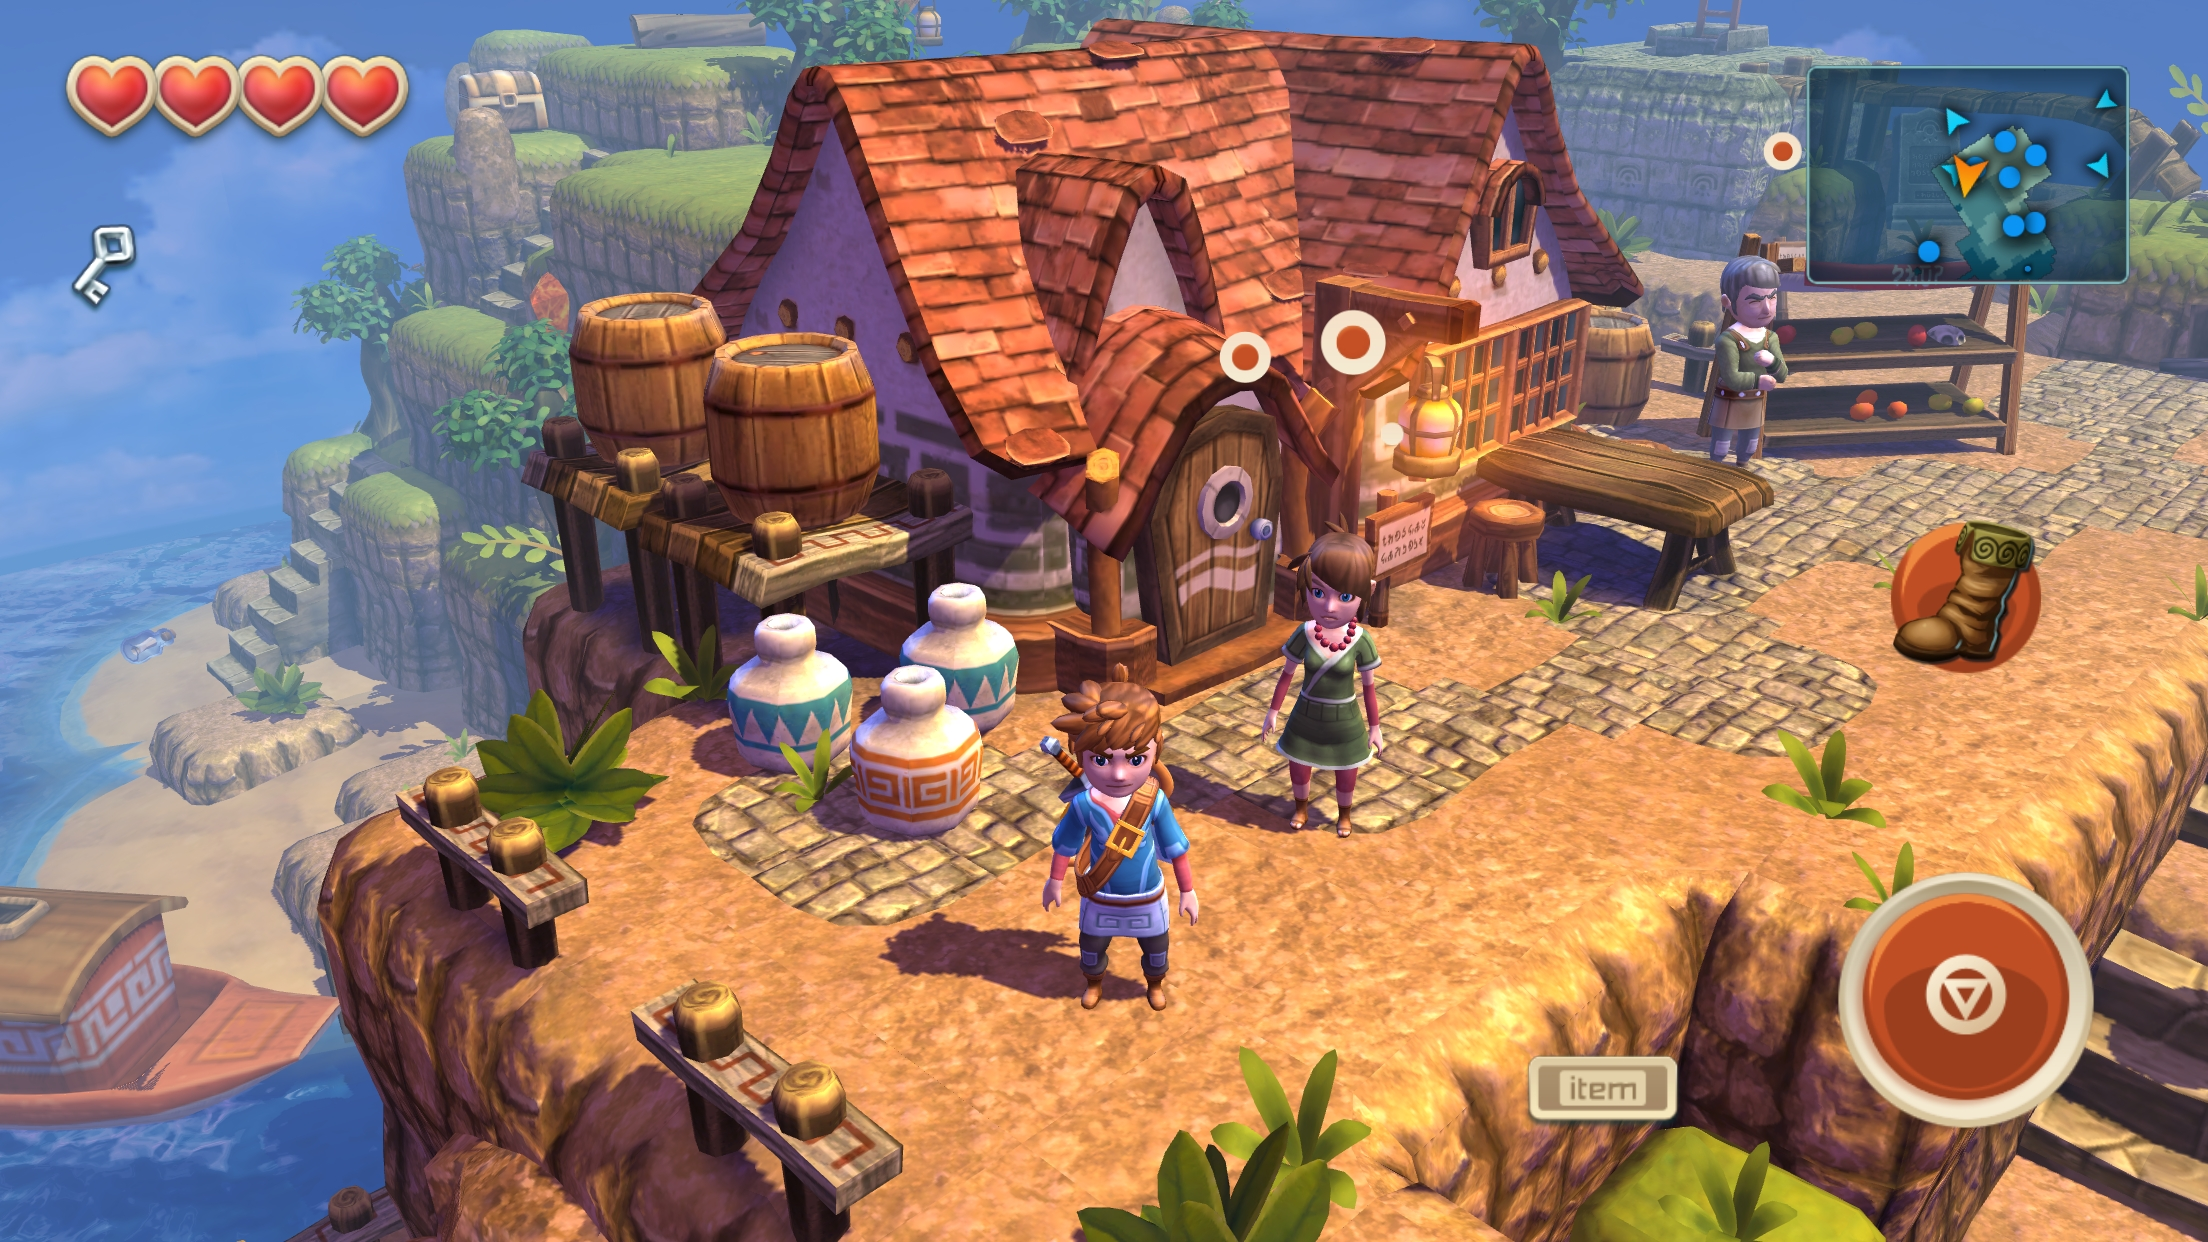 Oceanhorn gets iOS 9 'Ultra Quality' graphics with its latest update